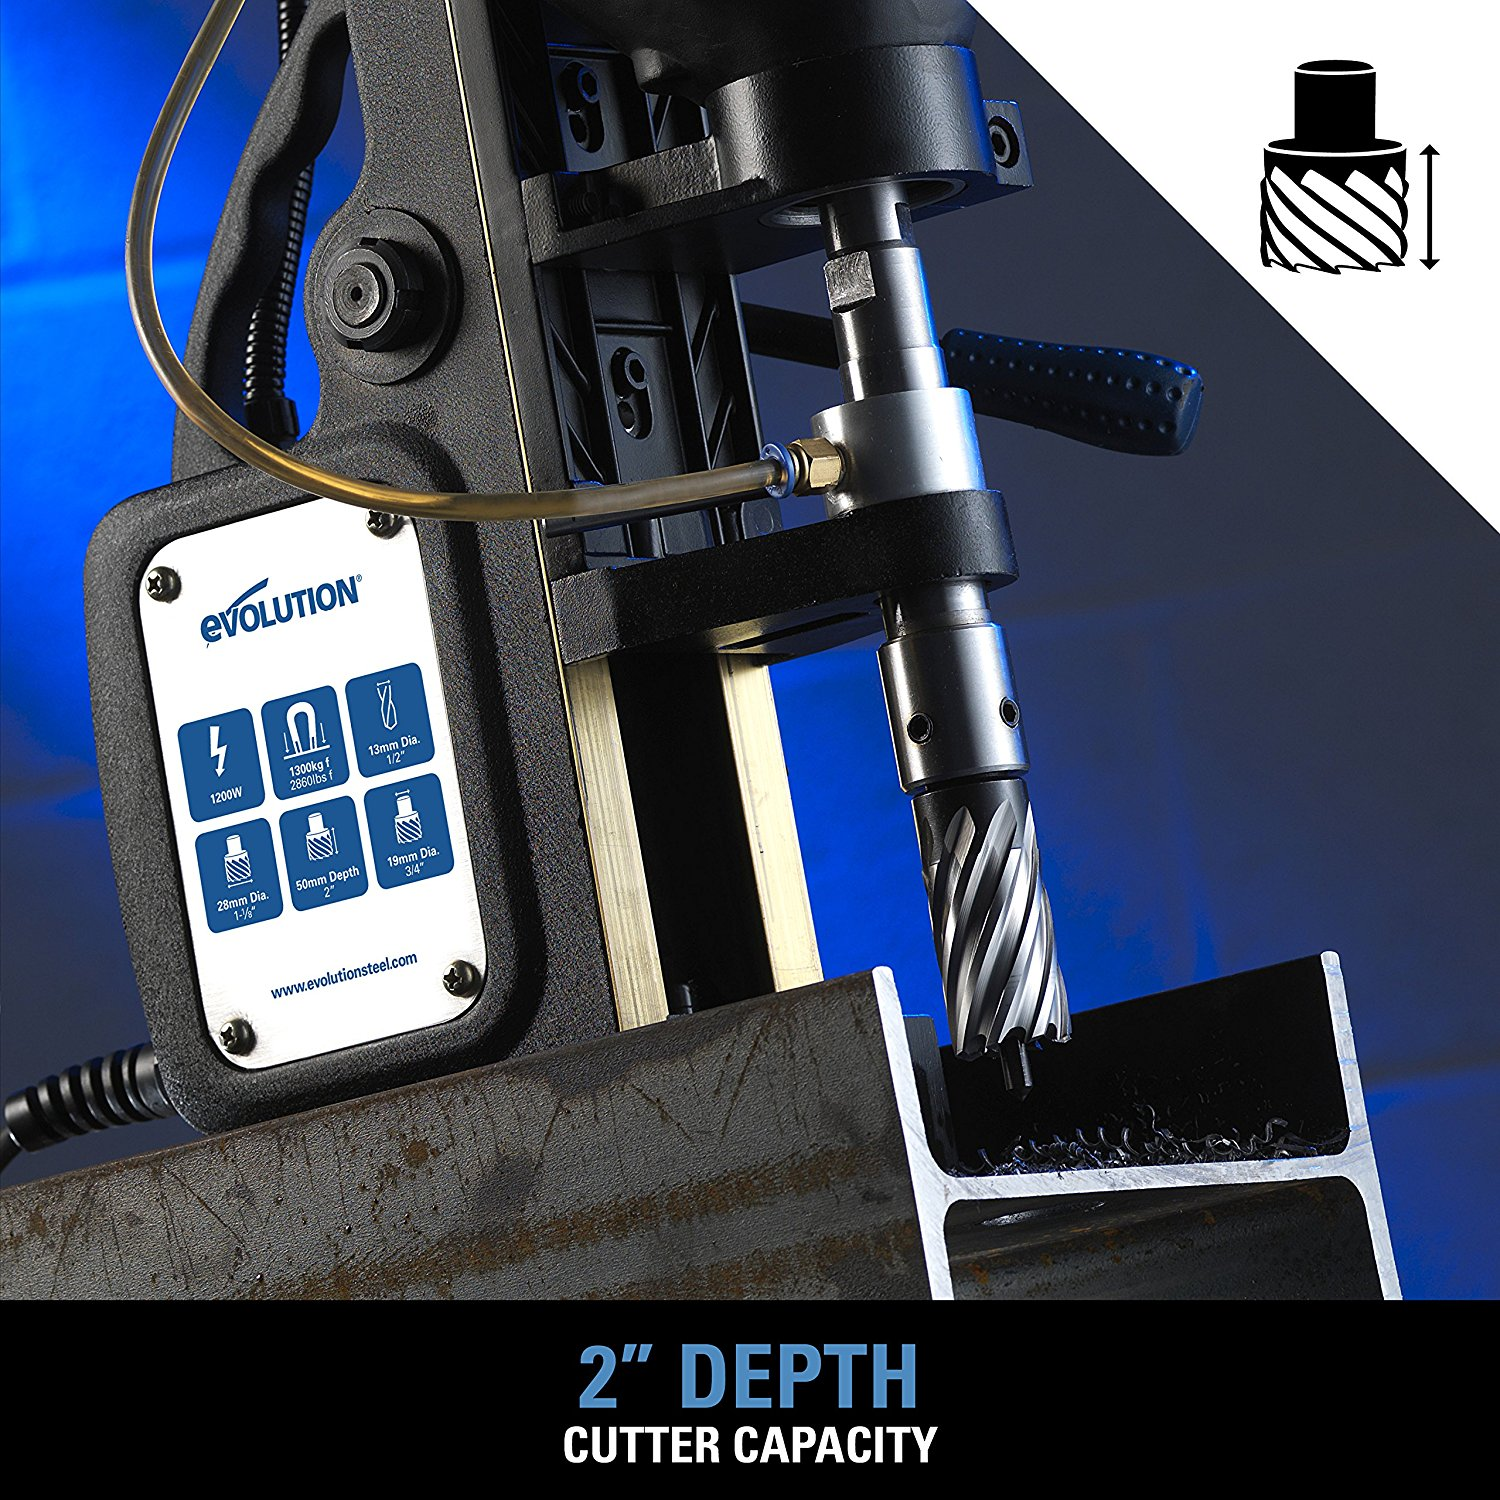 Evolution drill press review